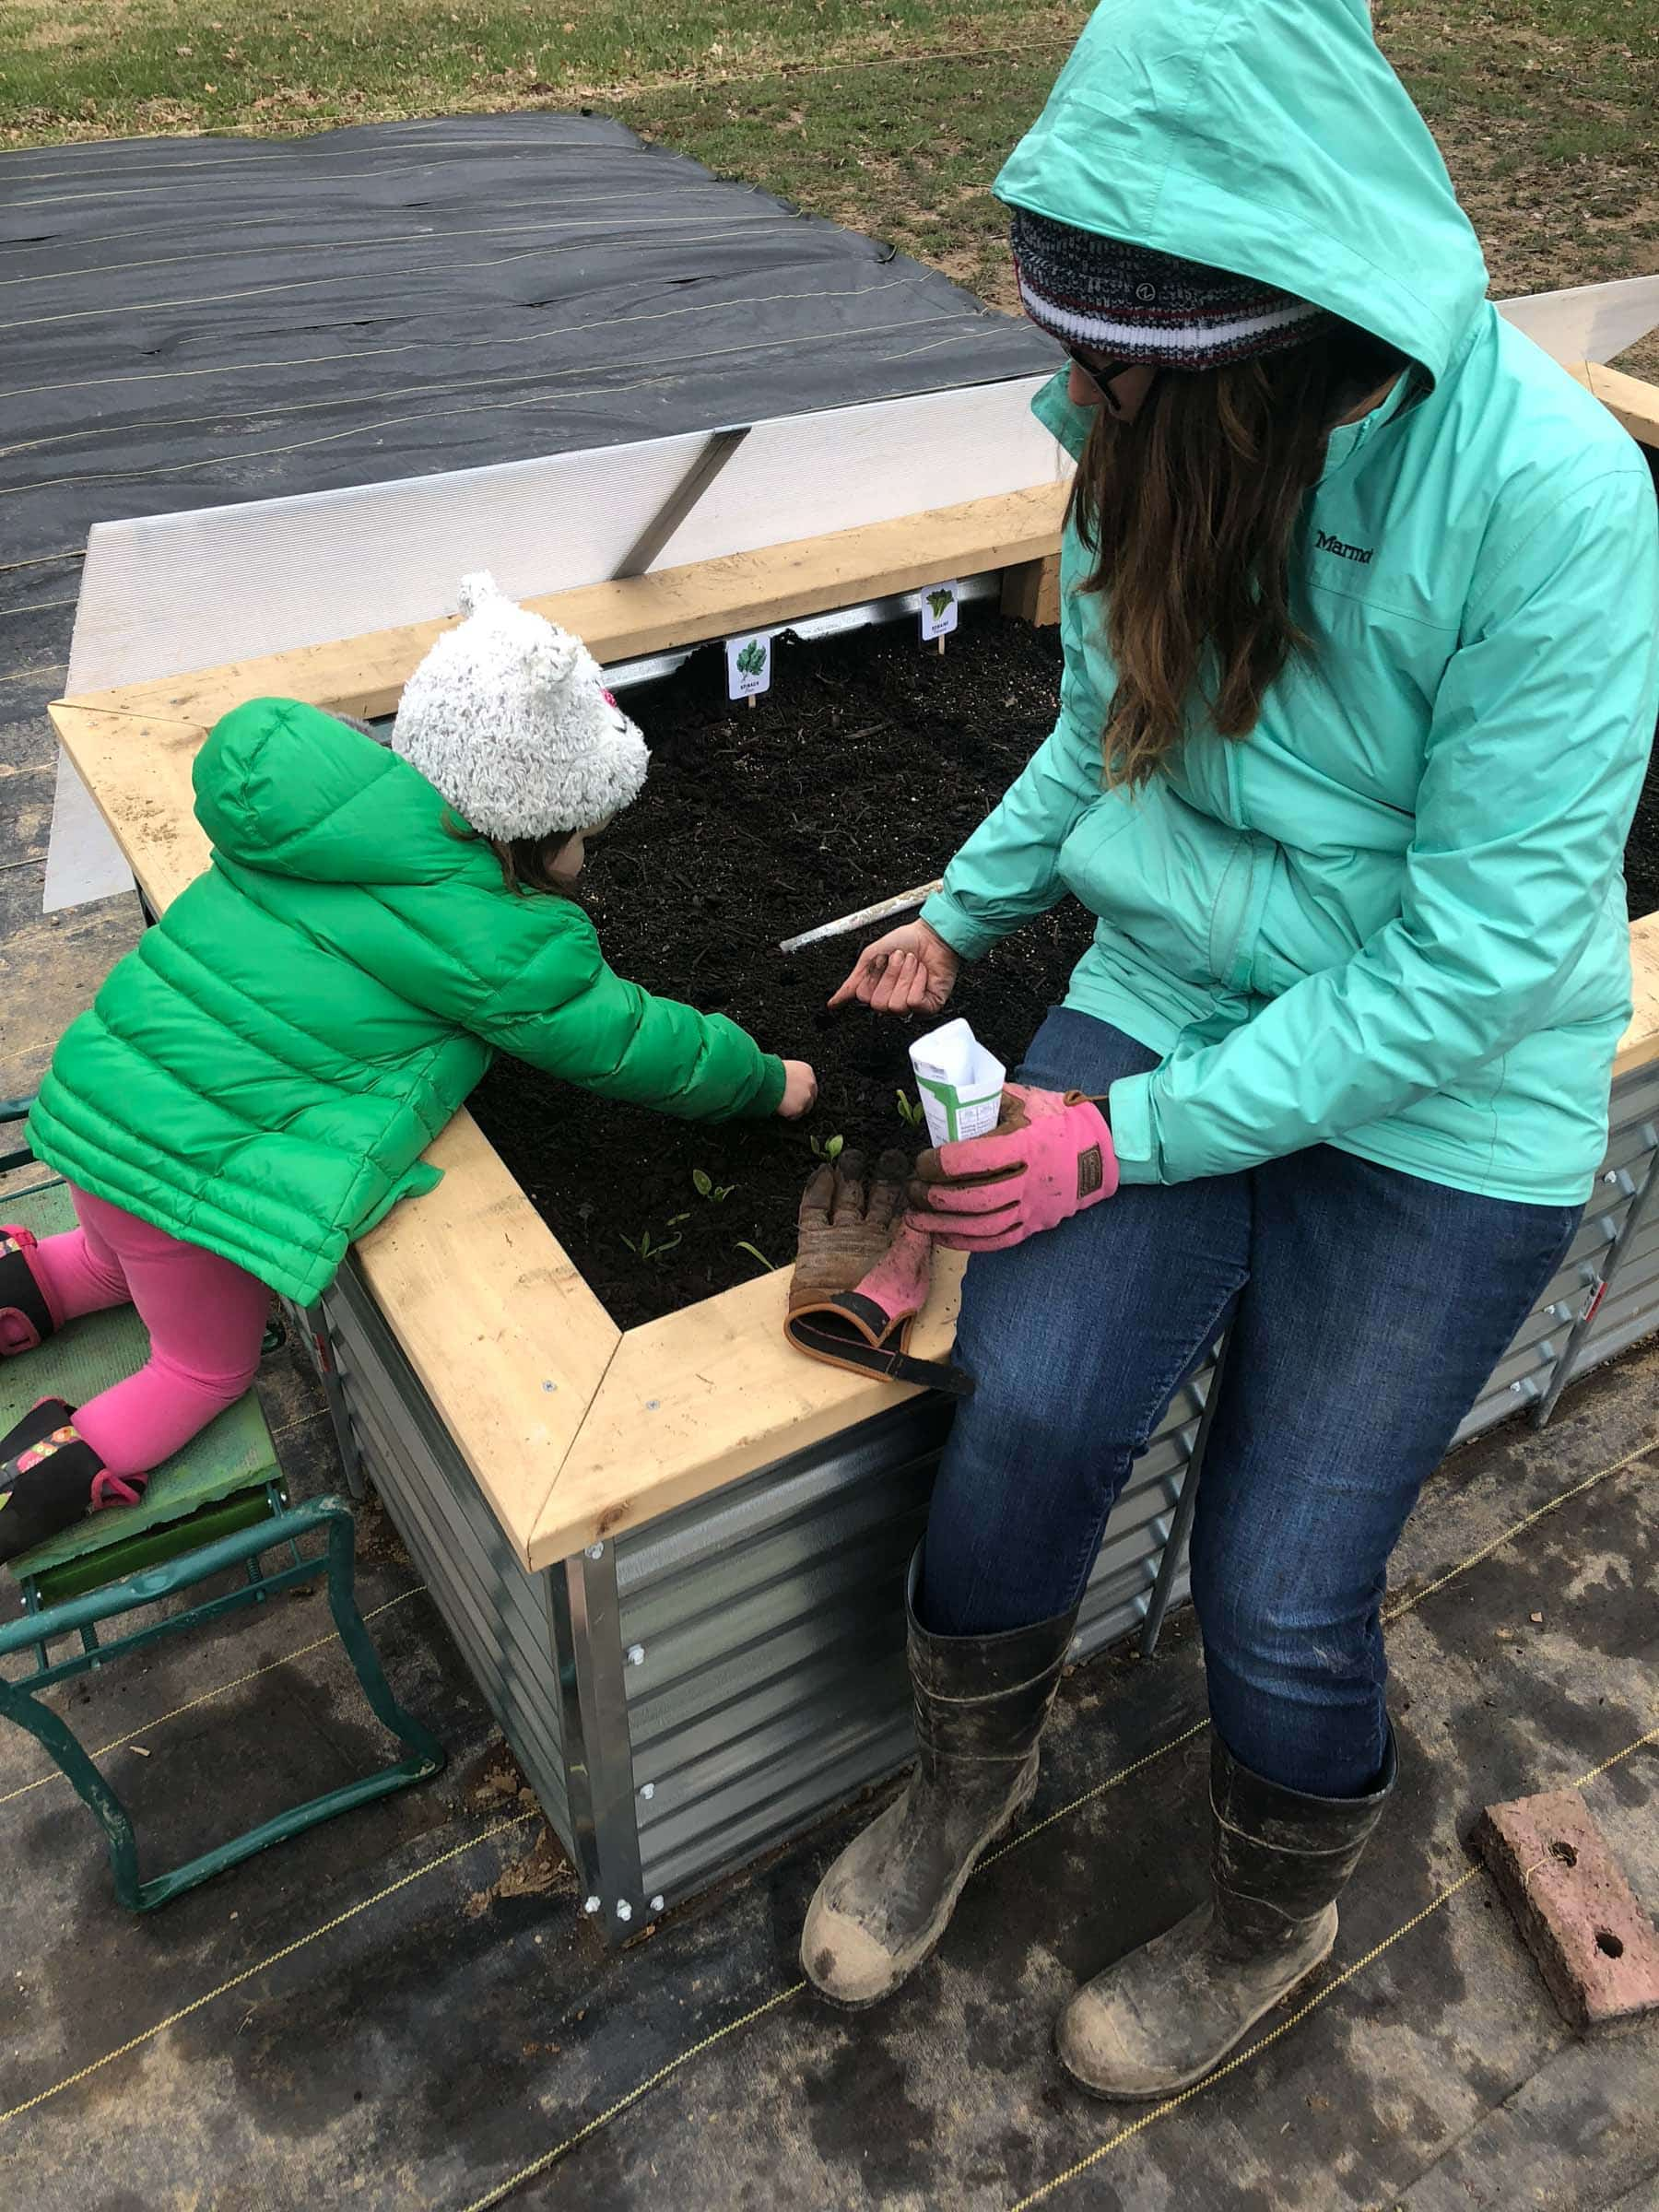 Mom and toddler planting seeds in raised bed